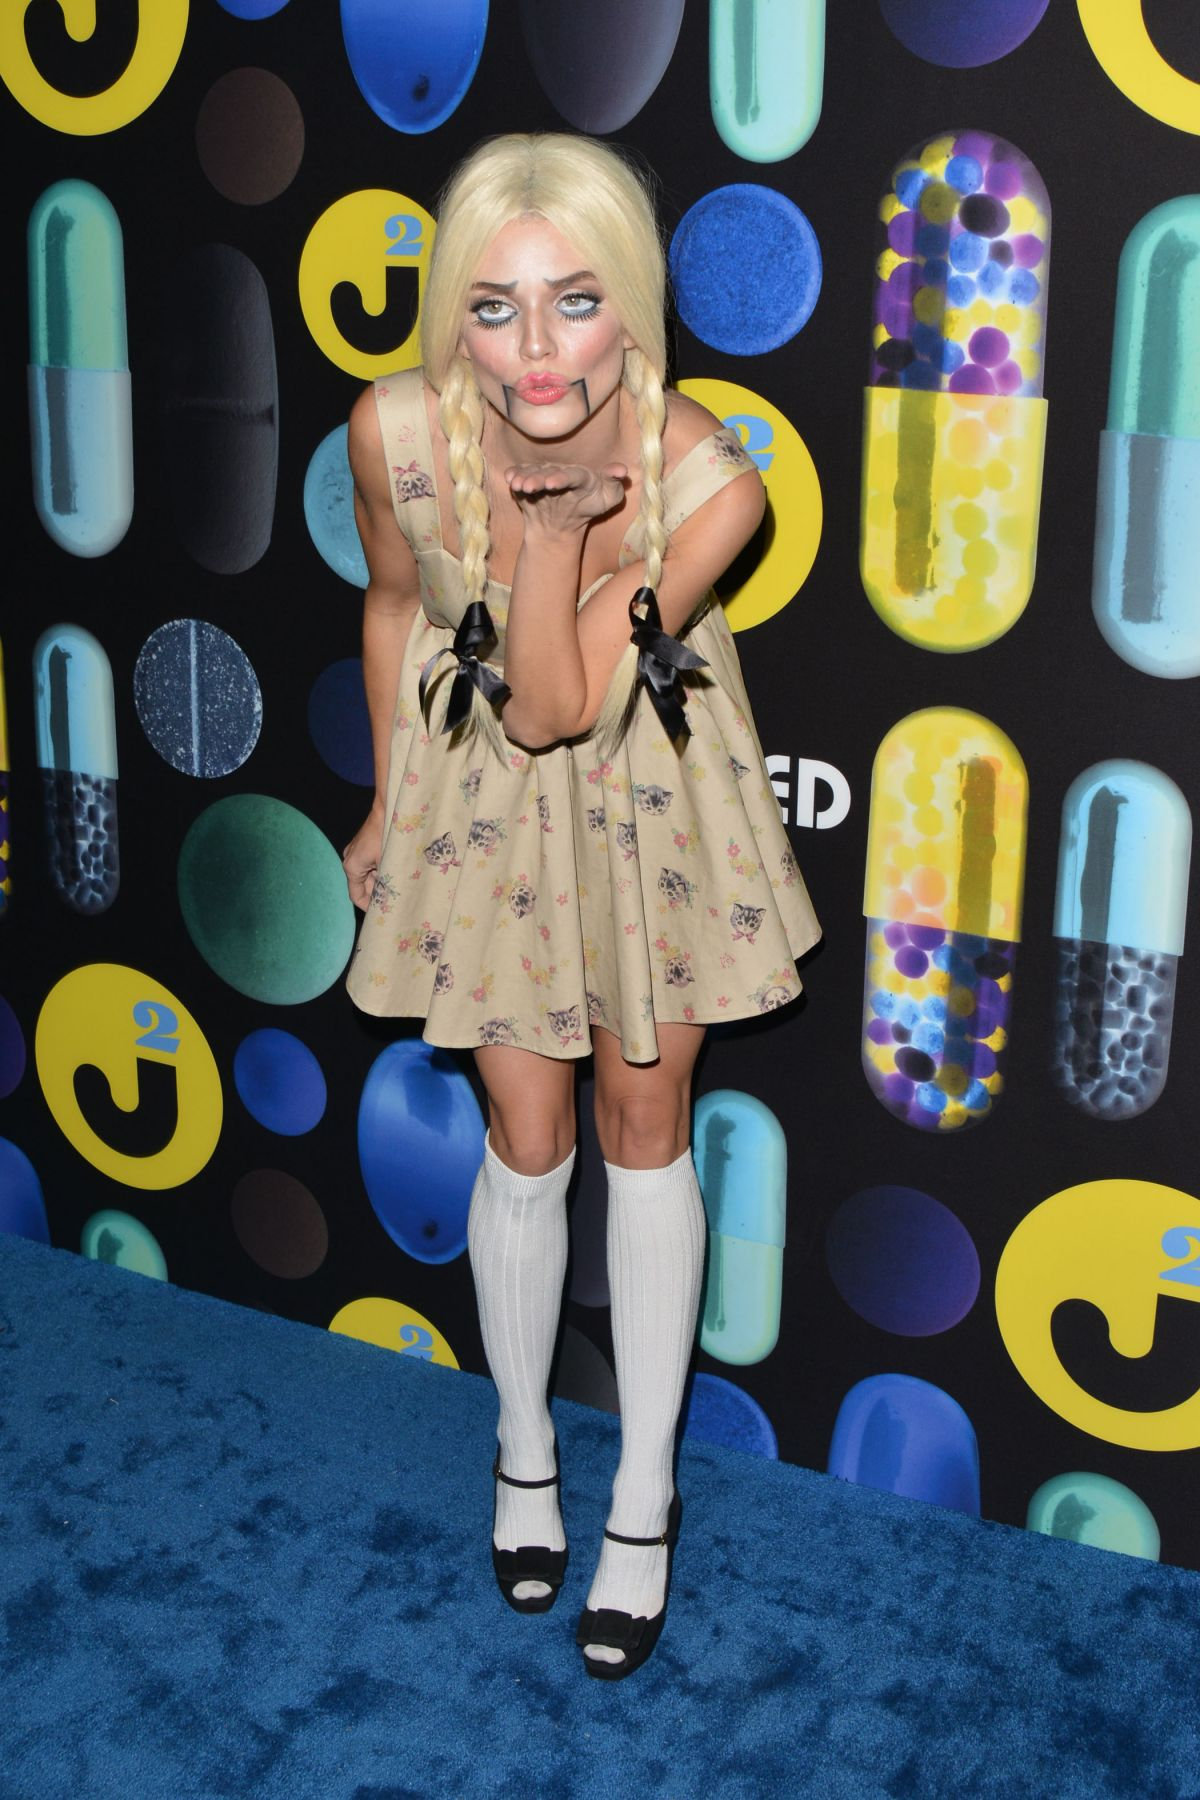 ANNALYNNE MCCORD at Just Jared Halloween Party in Hollywood 10/31 ...